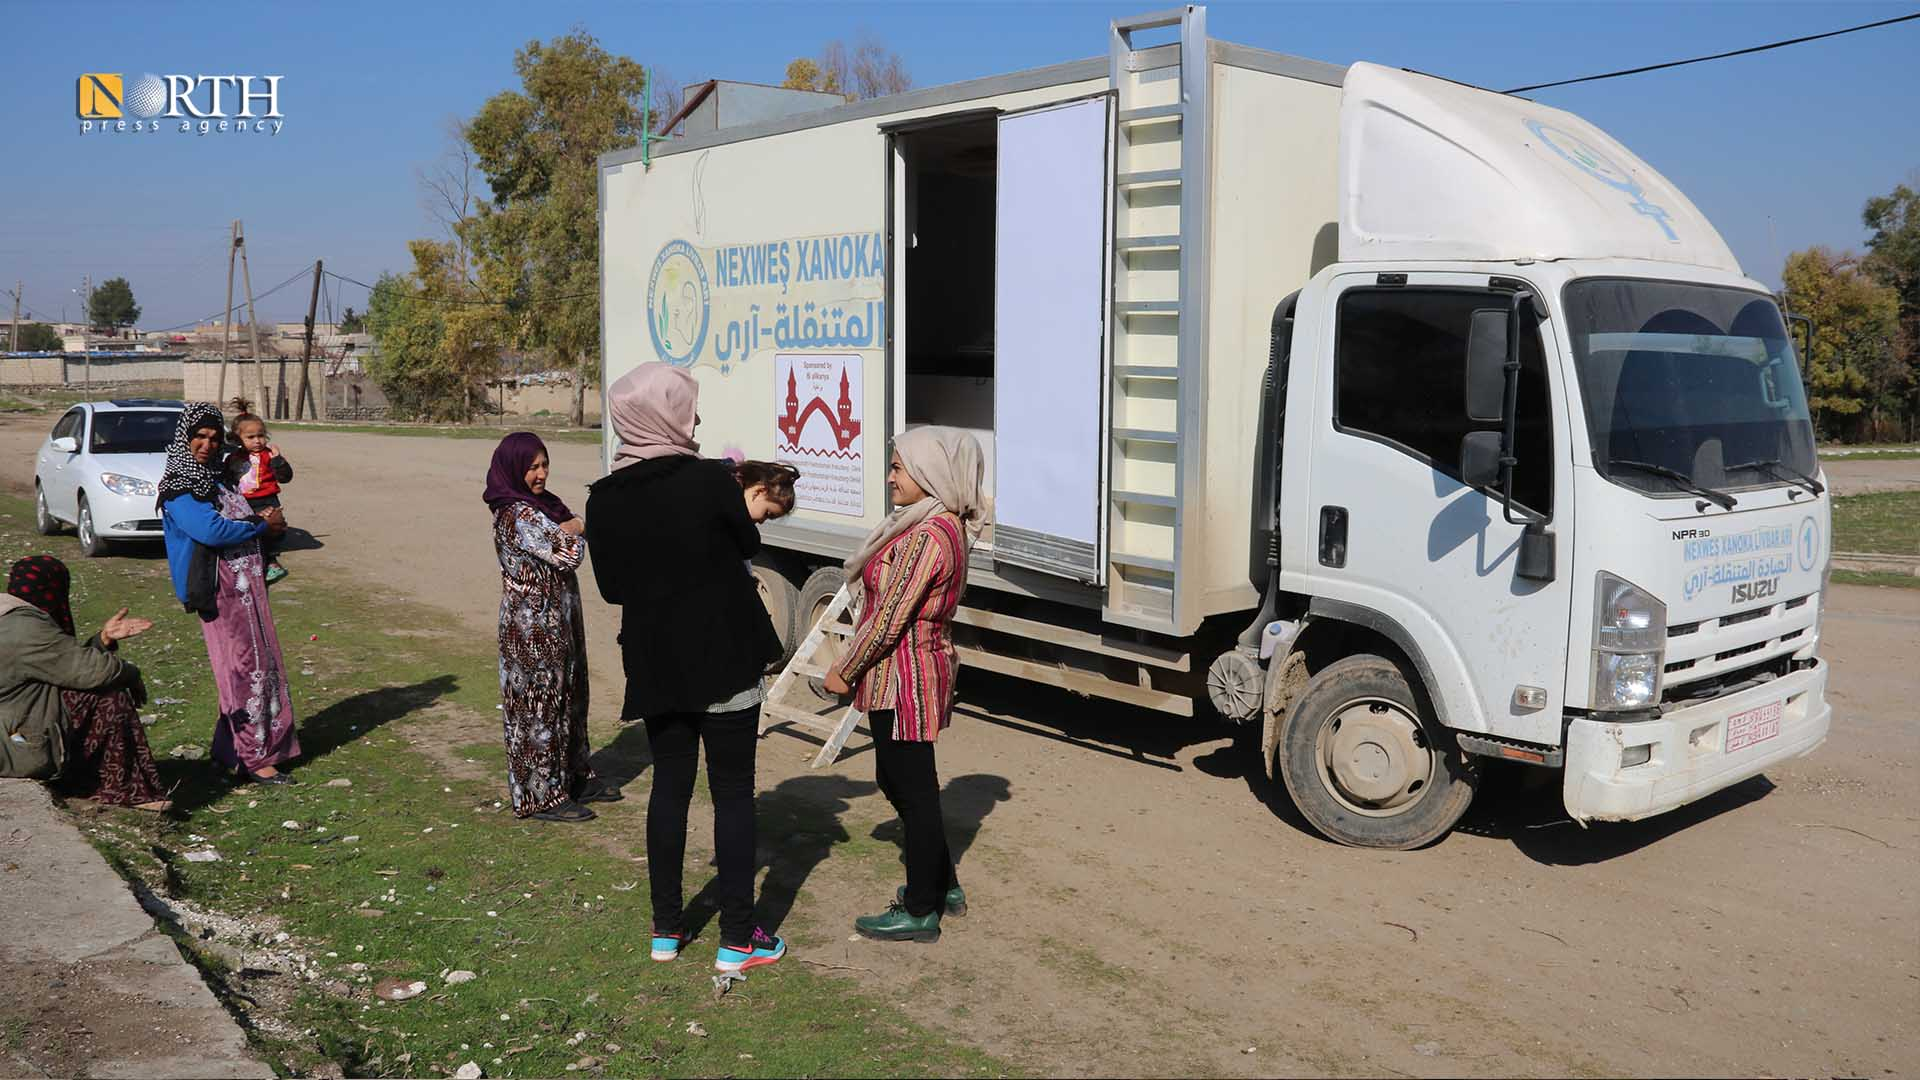 a mobile clinic for women in Derik countryside northeast Syria- North Press